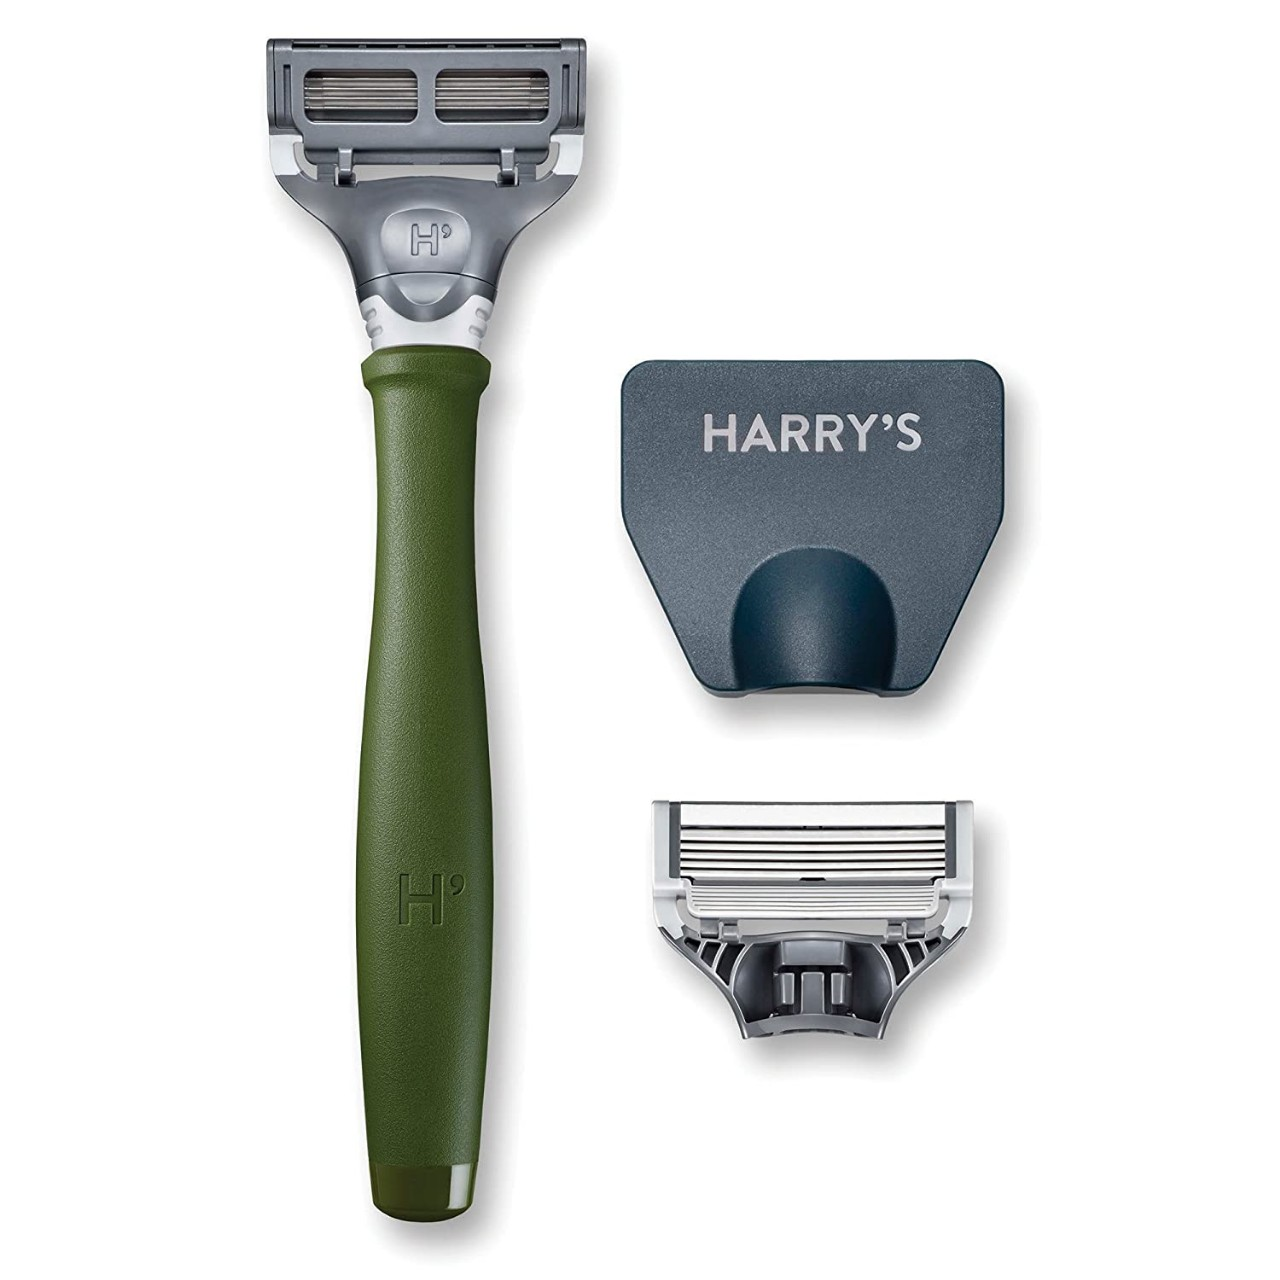 Harry's Men's Razor with 2 Razor Blades - Forest Green